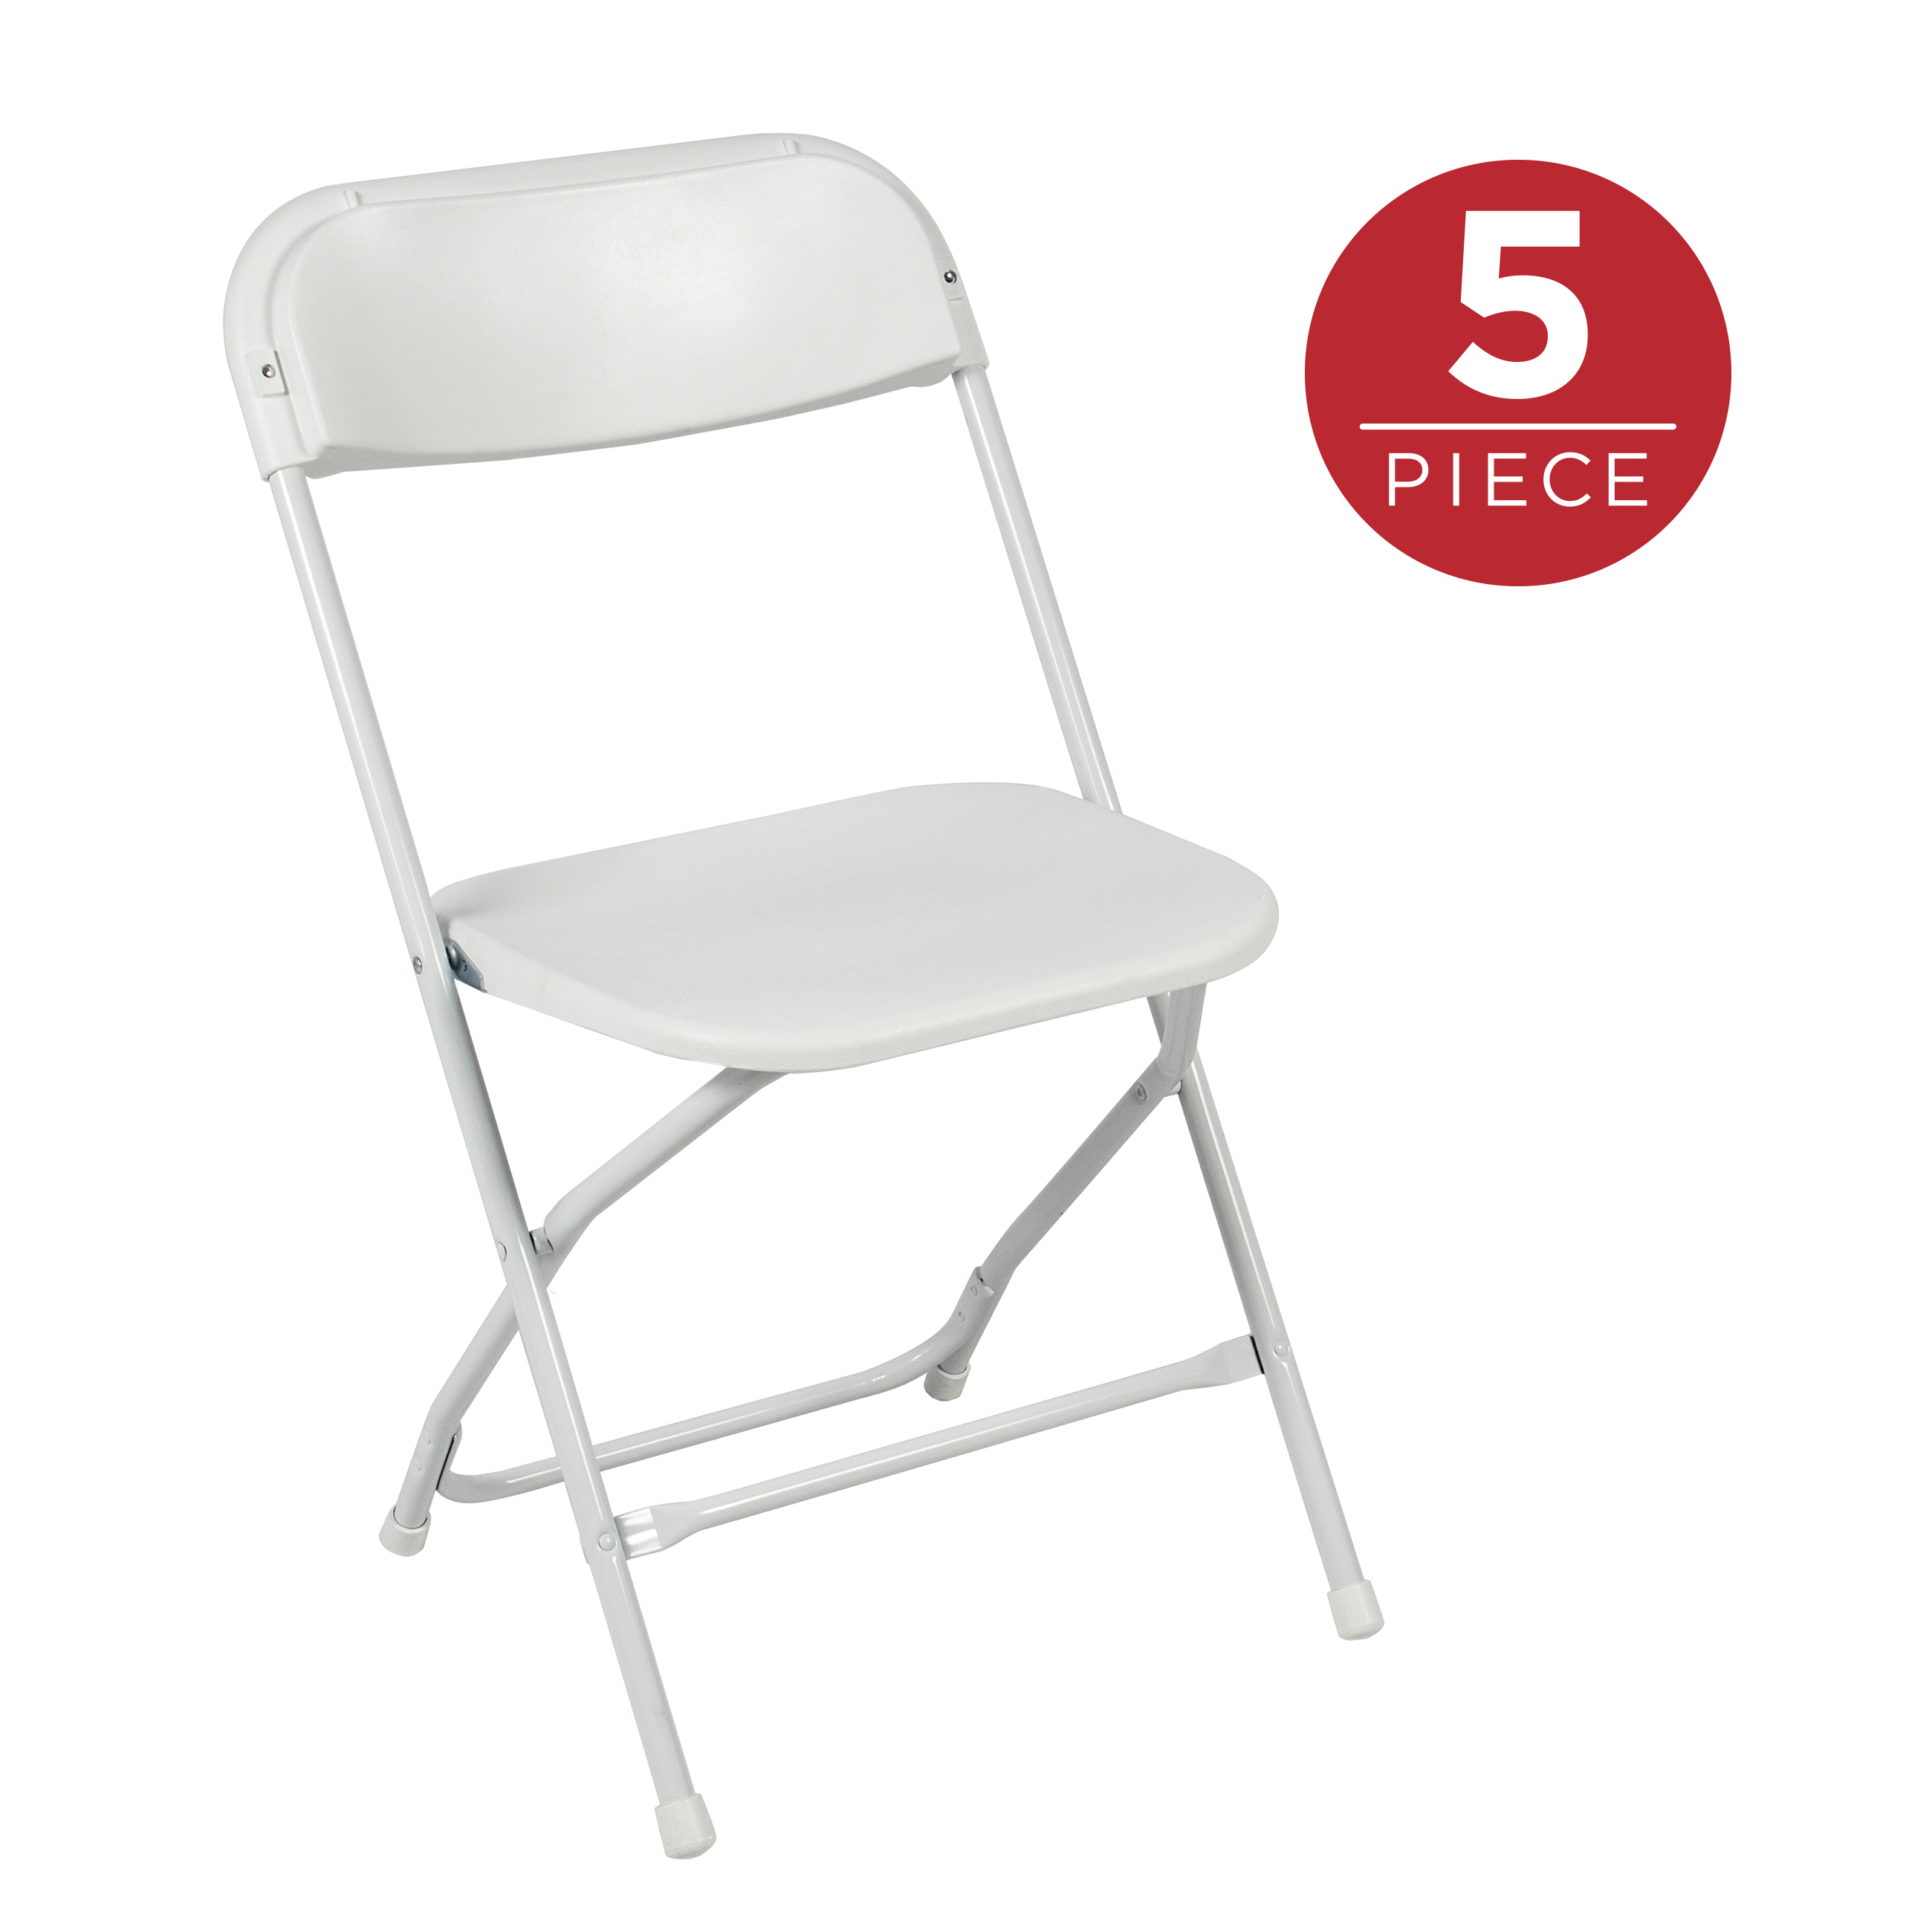 portable folding chairs with storage in seat best choice products set of 5 indoor outdoor stackable lightweight plastic for events parties white walmart com